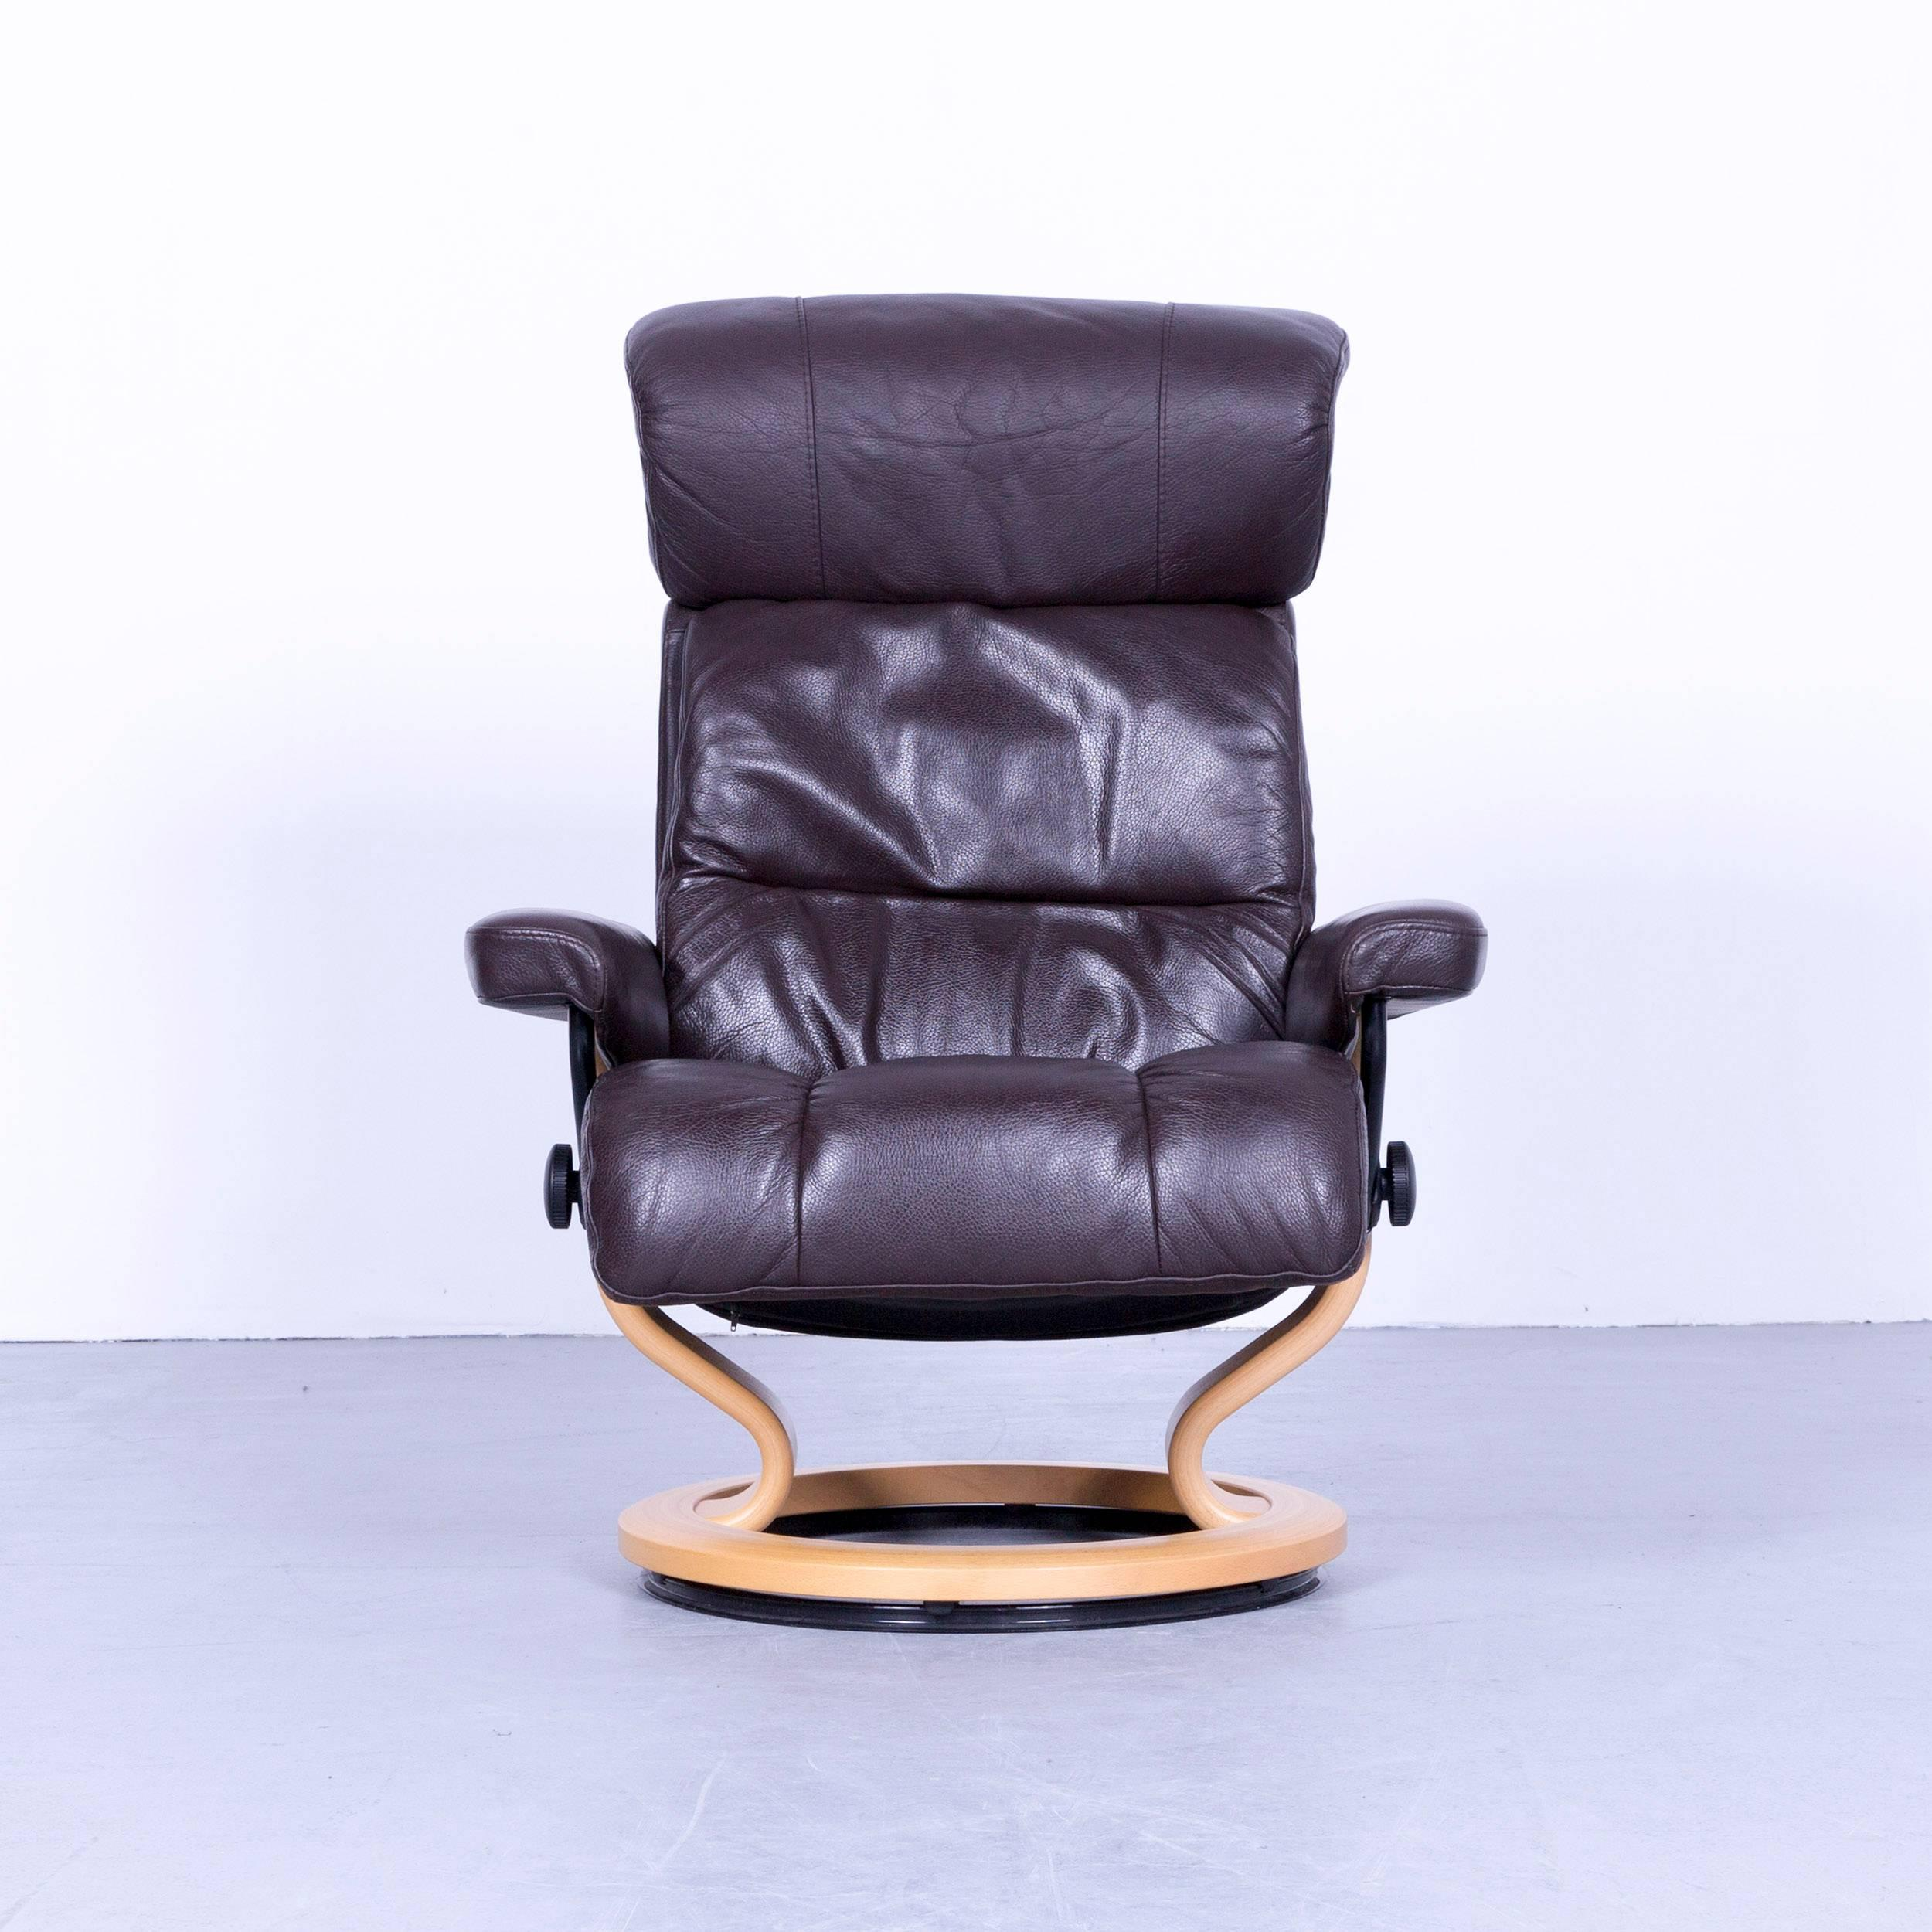 Ekornes Stressless Memphis Armchair Brown Leather Modern Recliner Chair  Designer, With Convenient Functions, Made